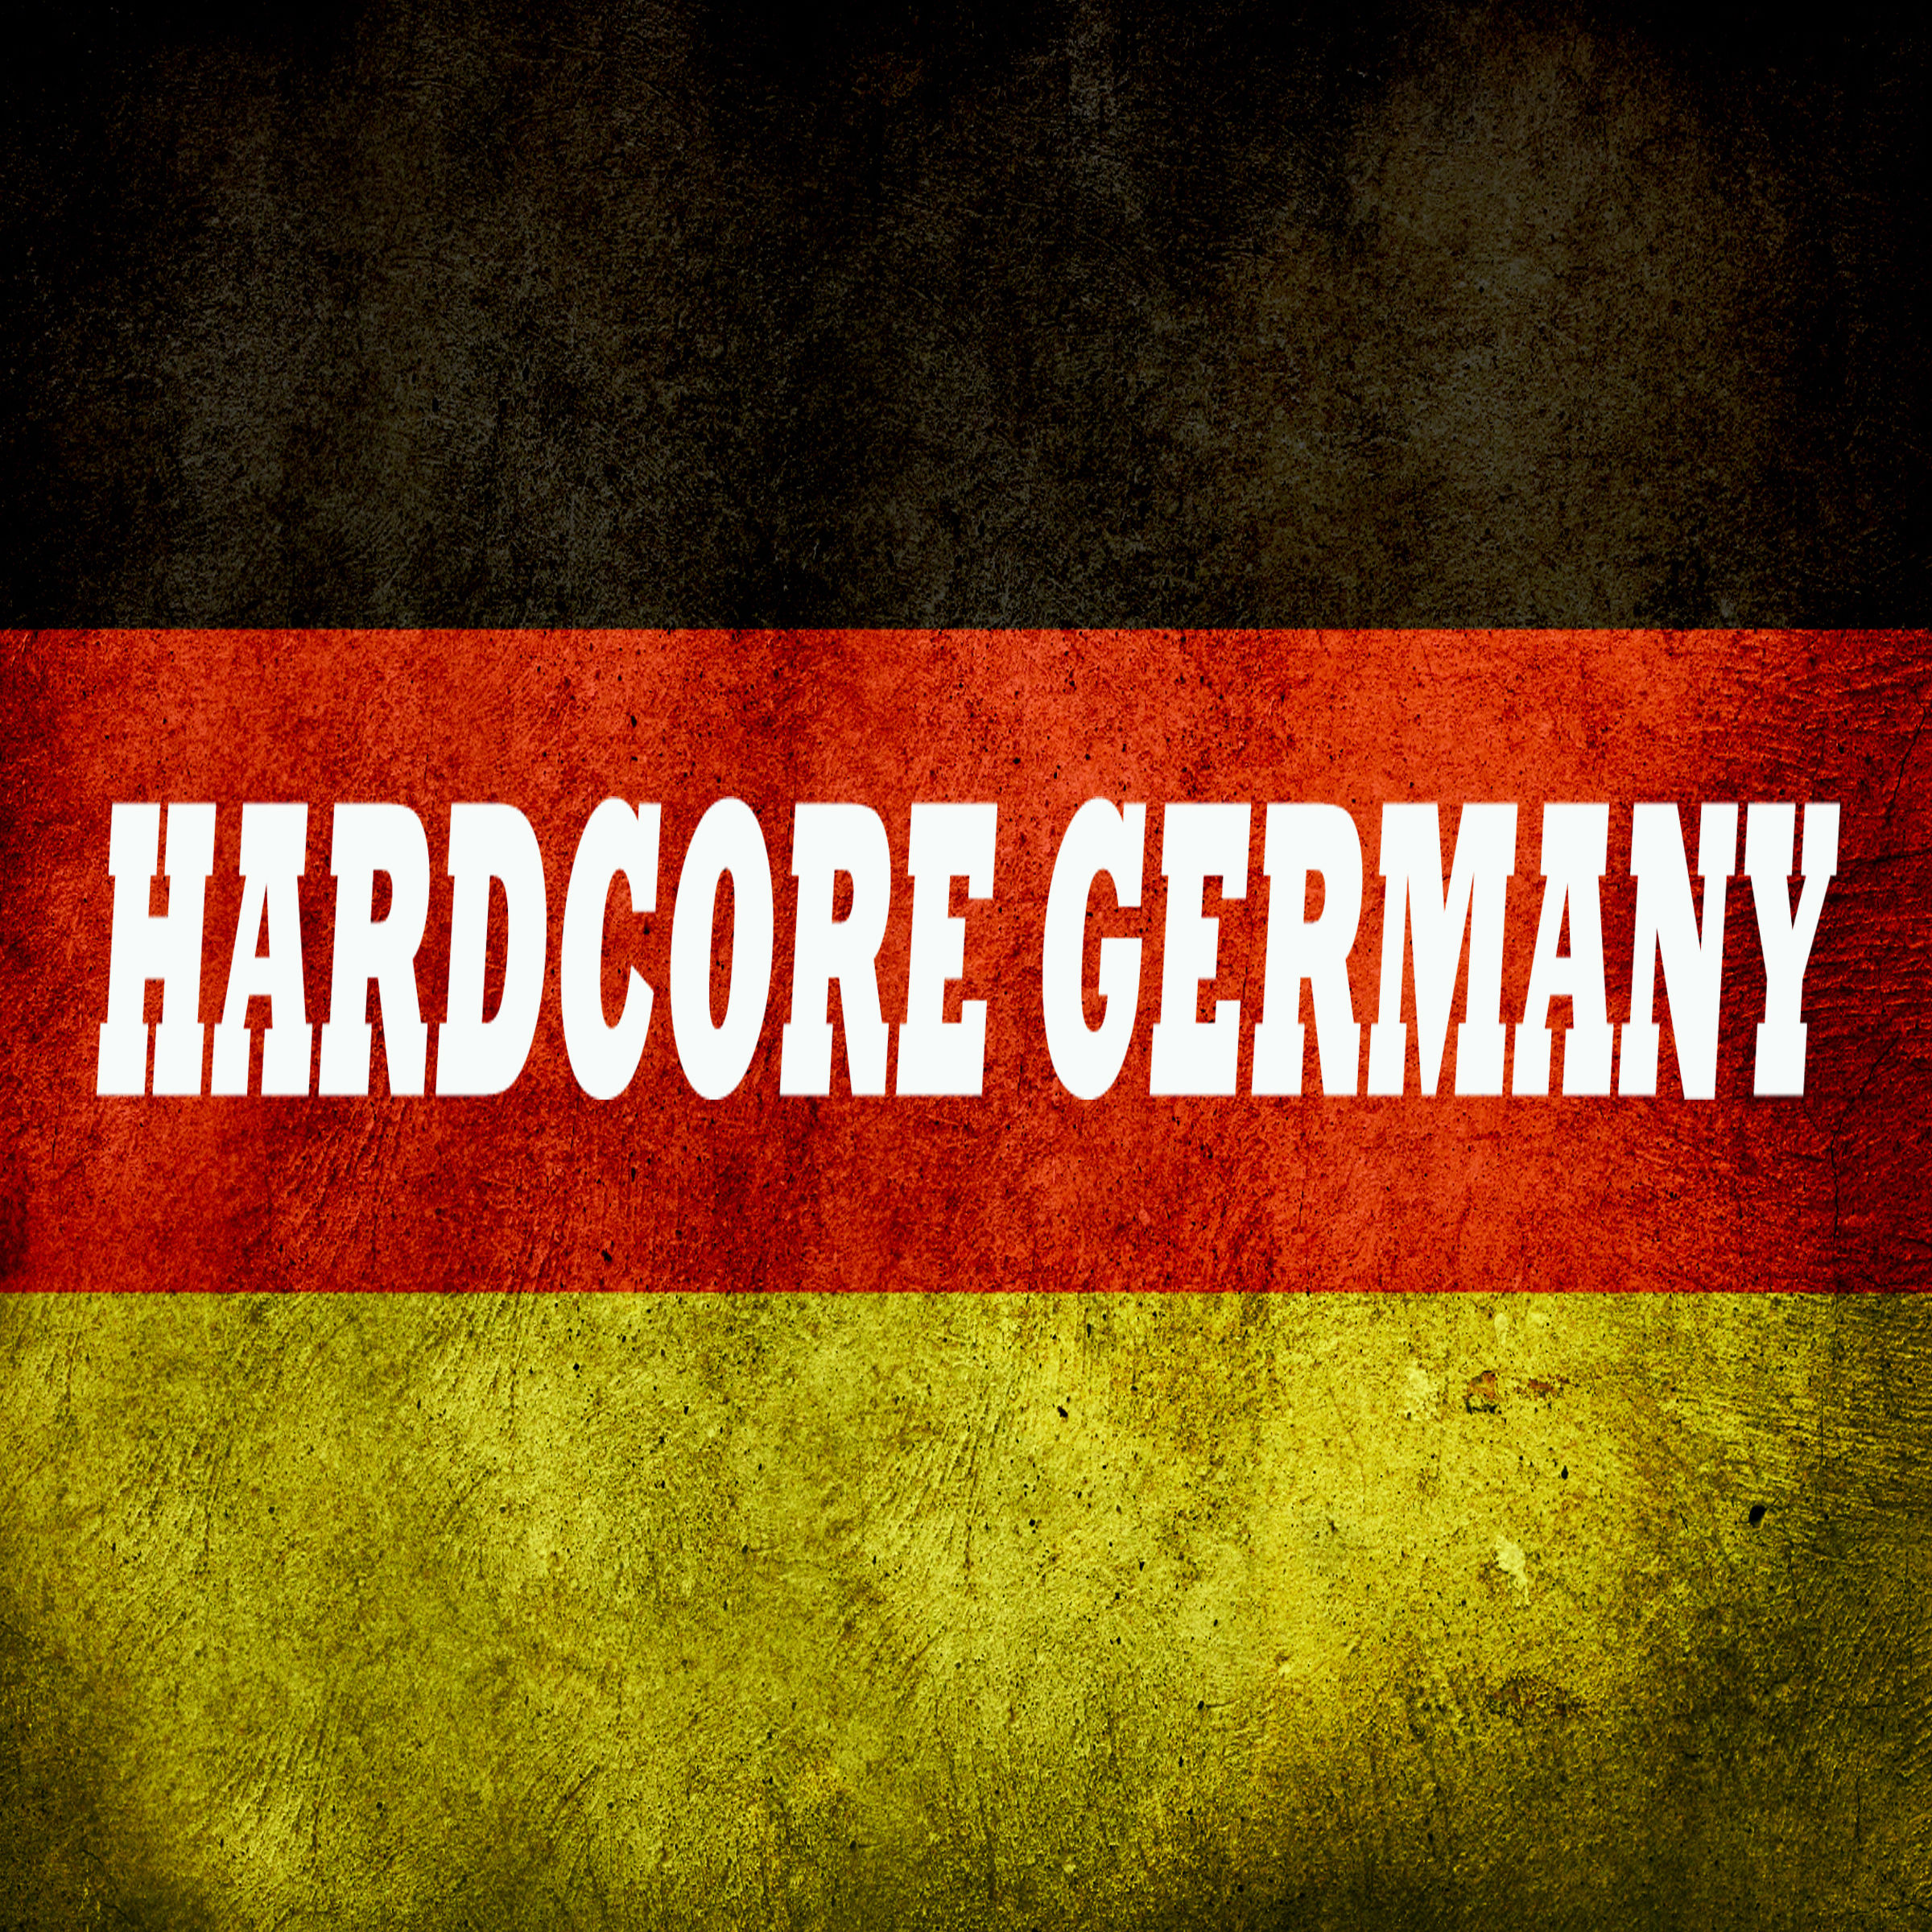 Harcore Germany